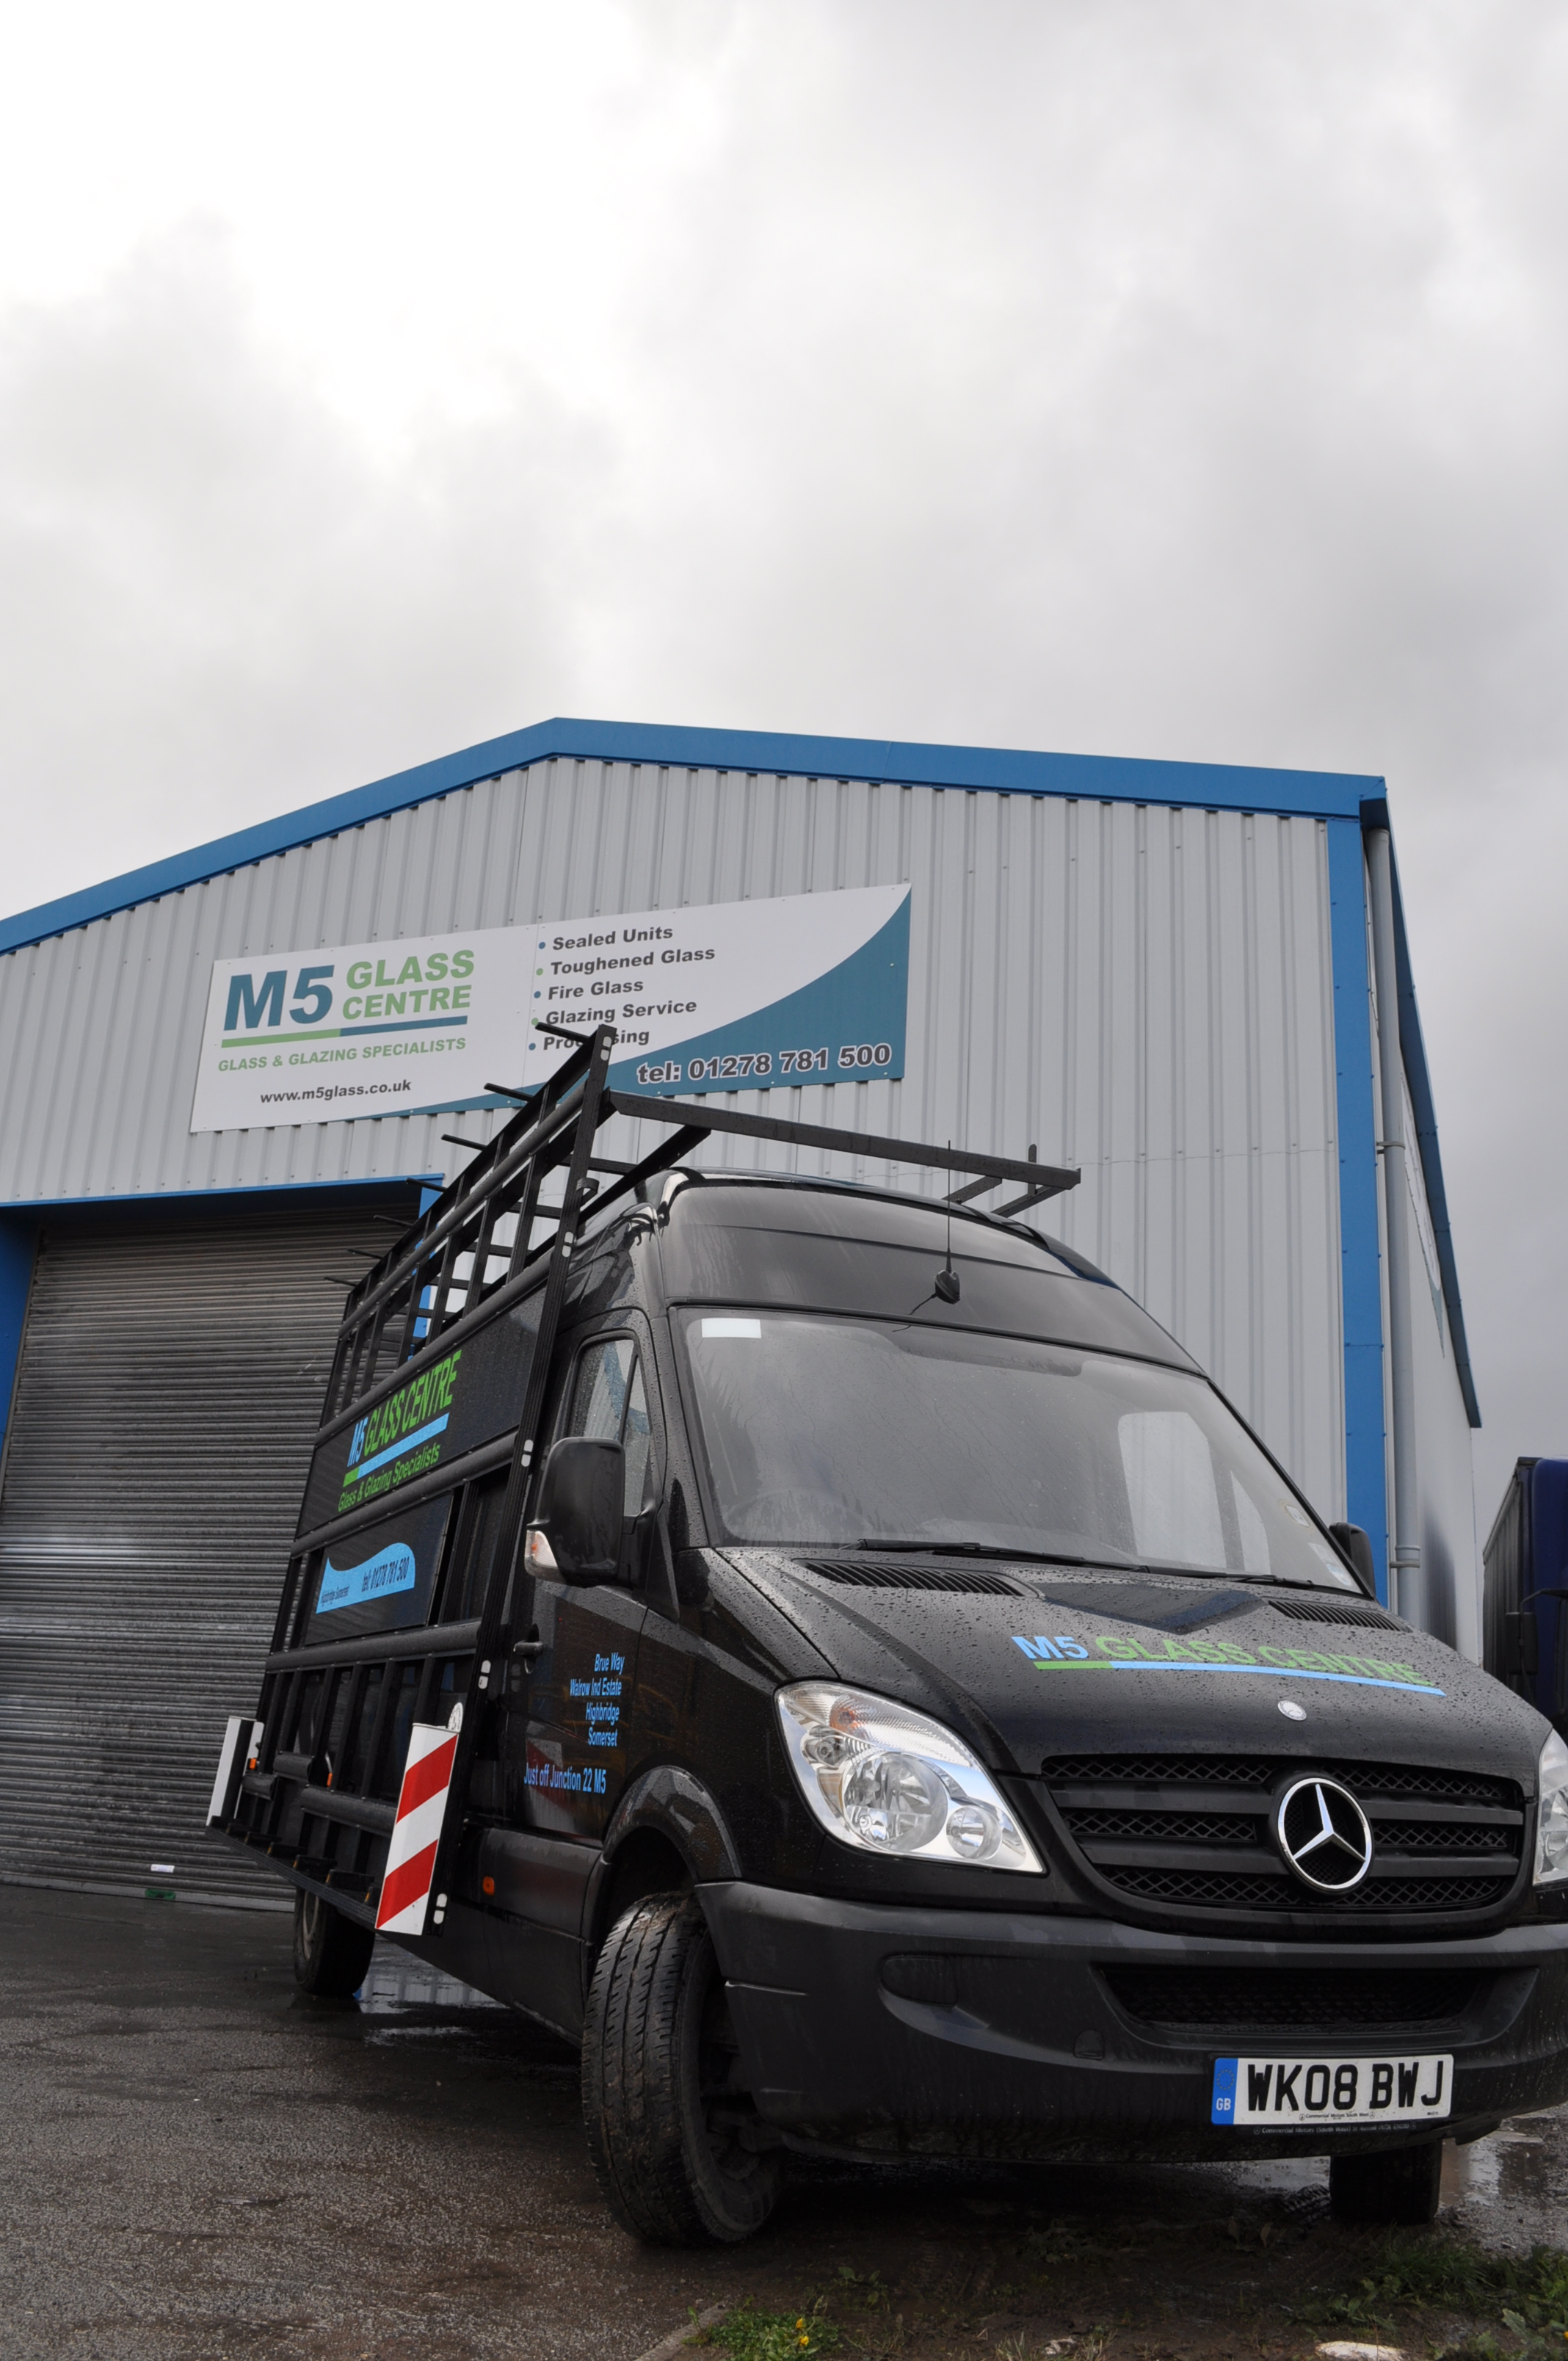 M5 Glass Centre Van